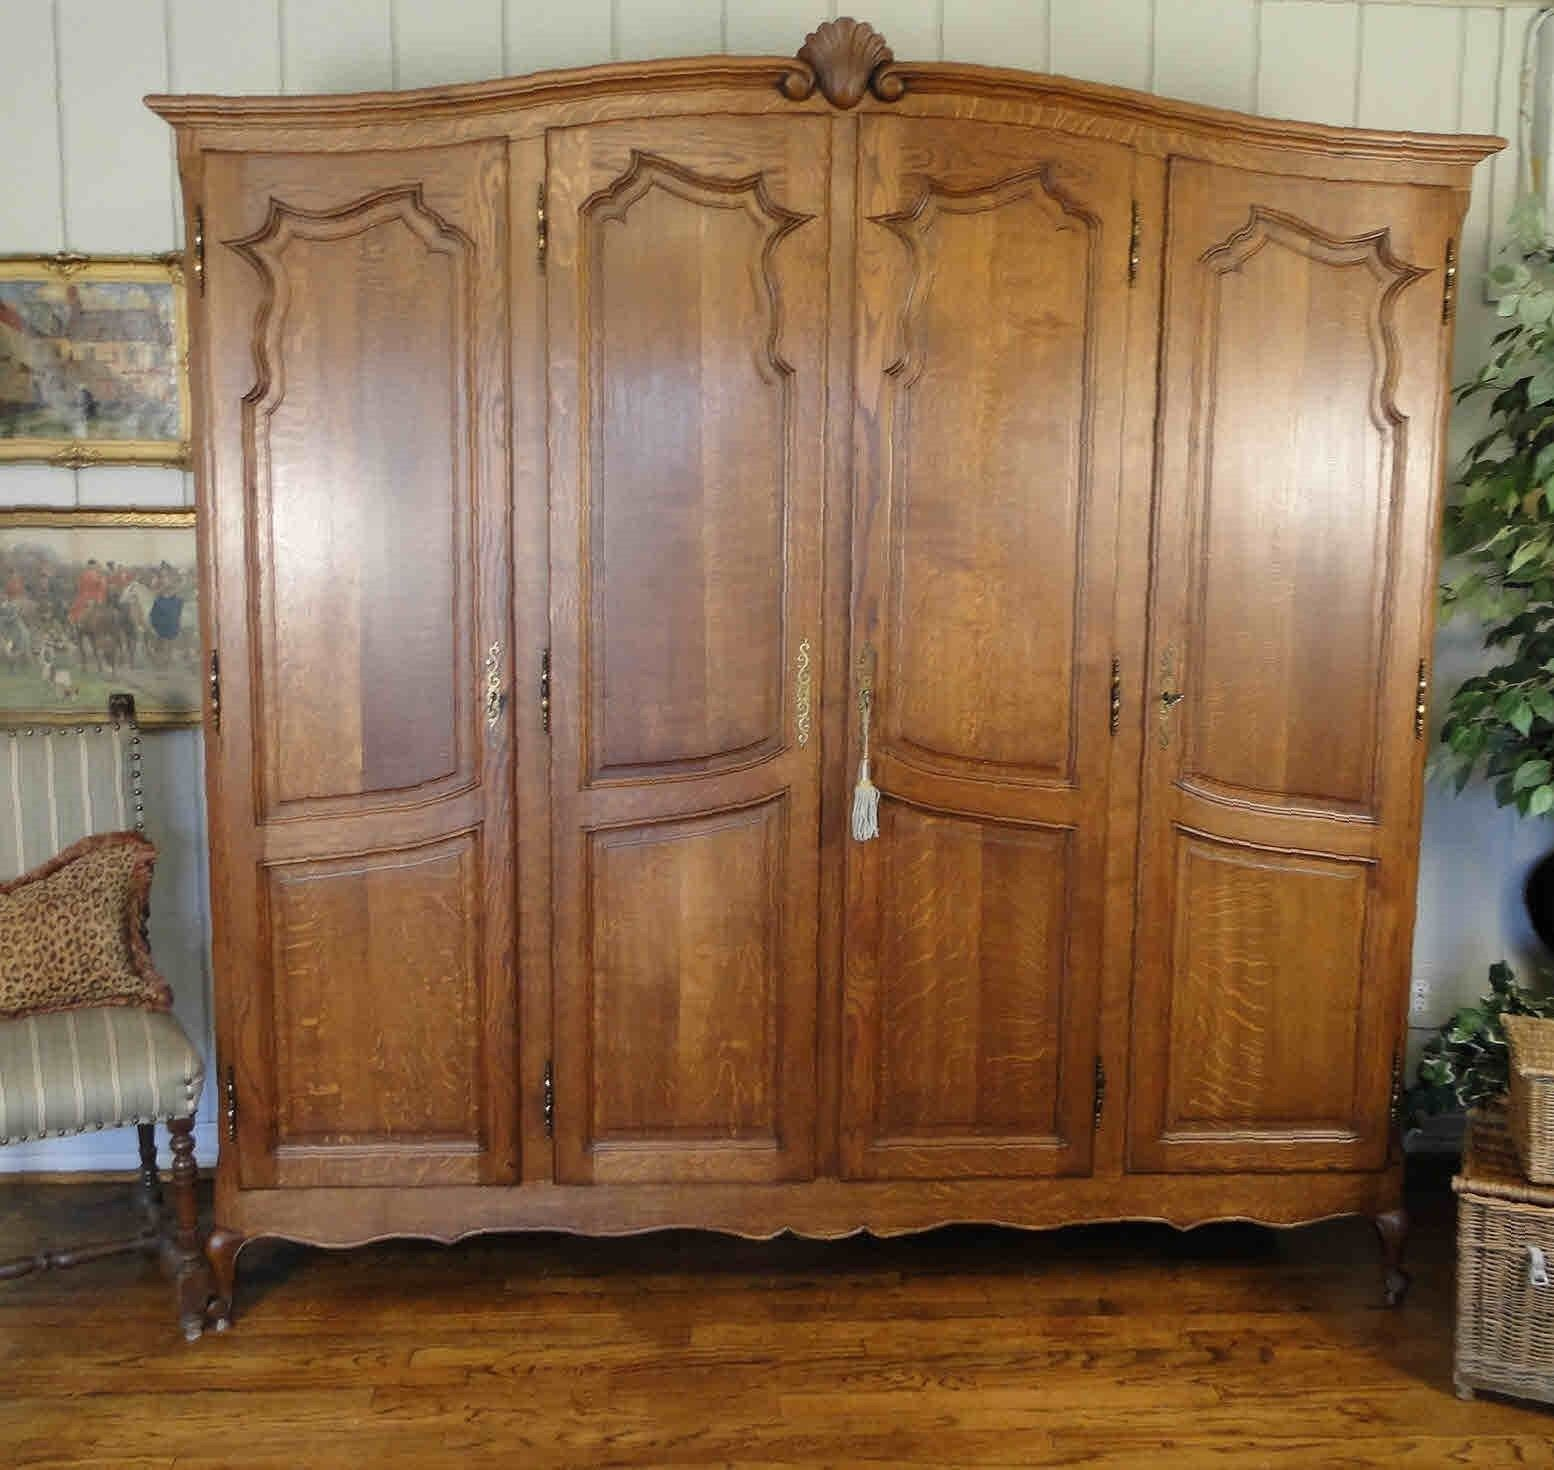 Antique French Country Wardrobe Armoire Three Door Shelves Hanging Rod